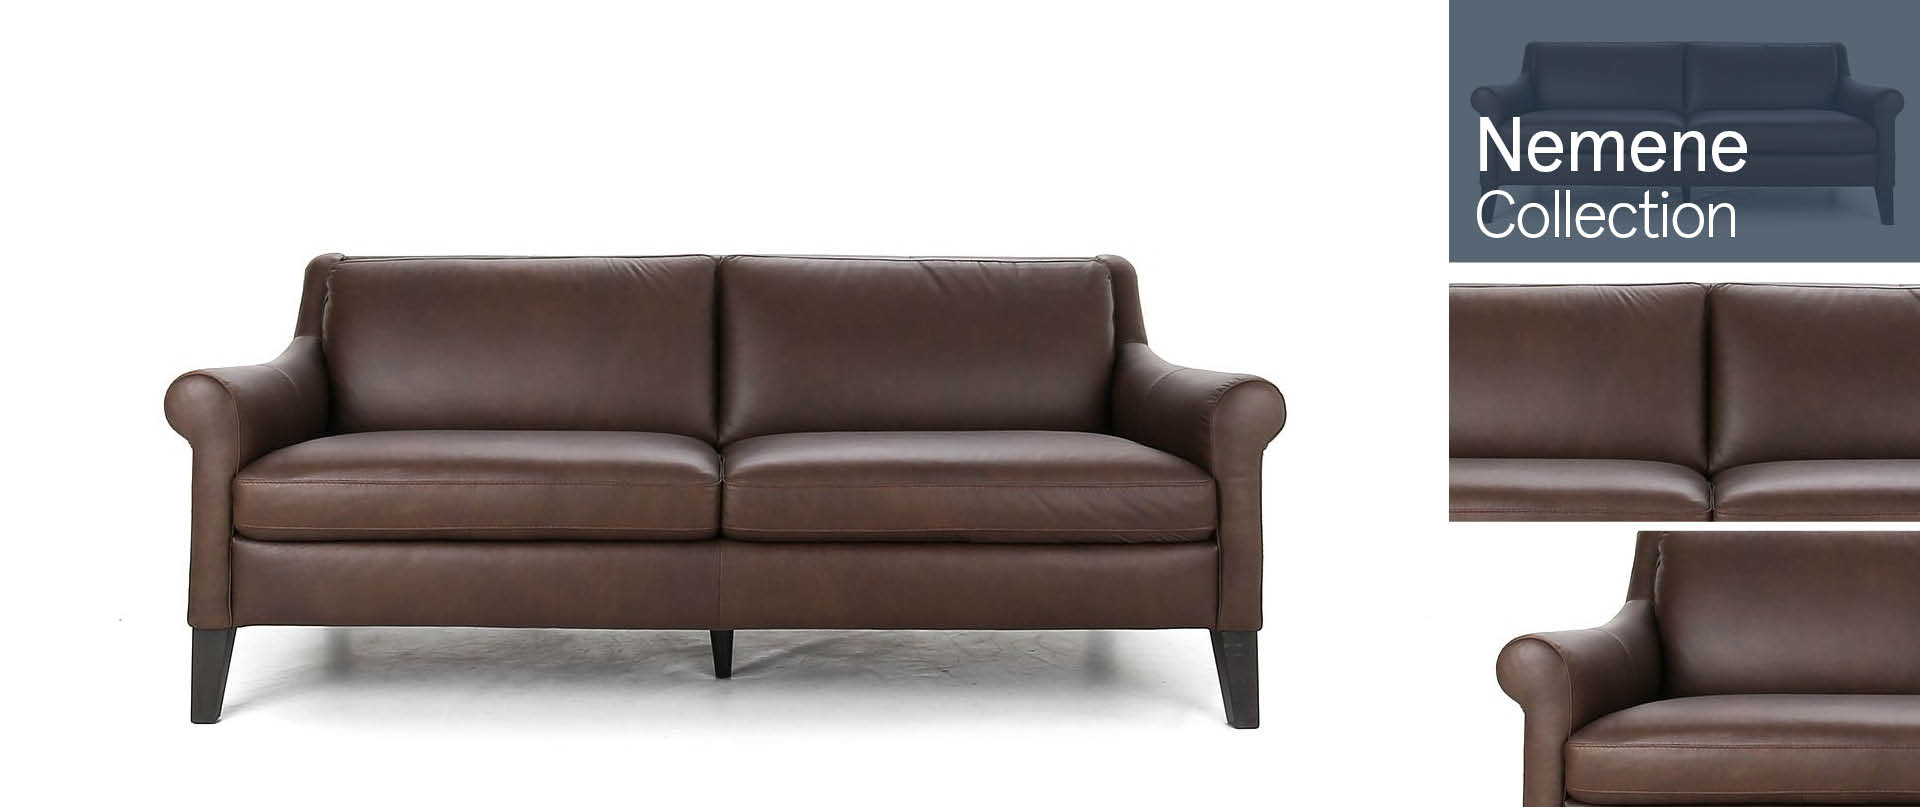 Nemene Leather Sofa Ranges